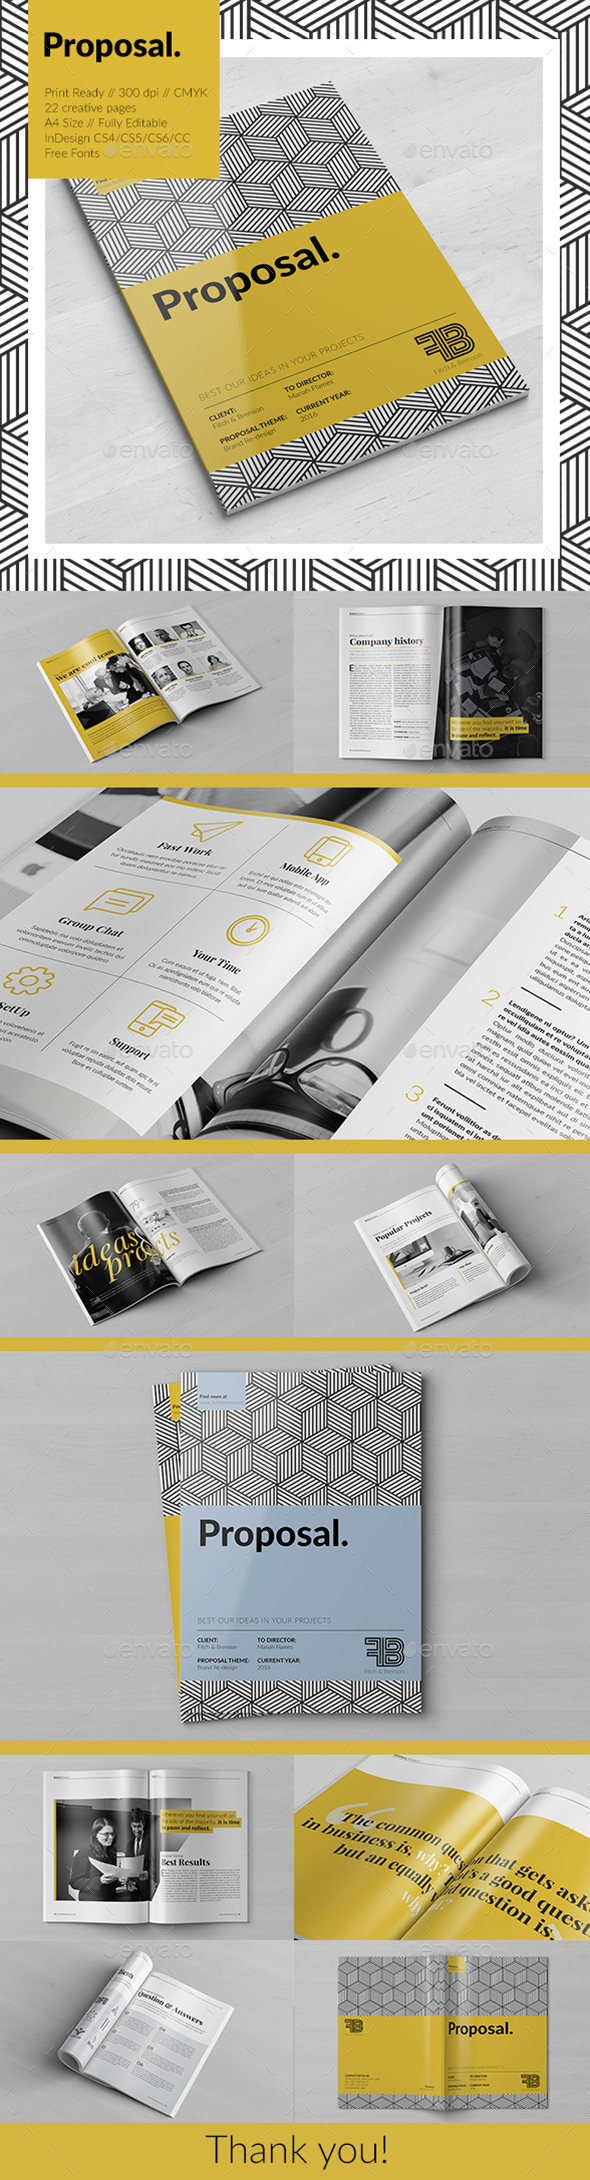 Creative Brochure (Proposal) - Brochures Print Templates